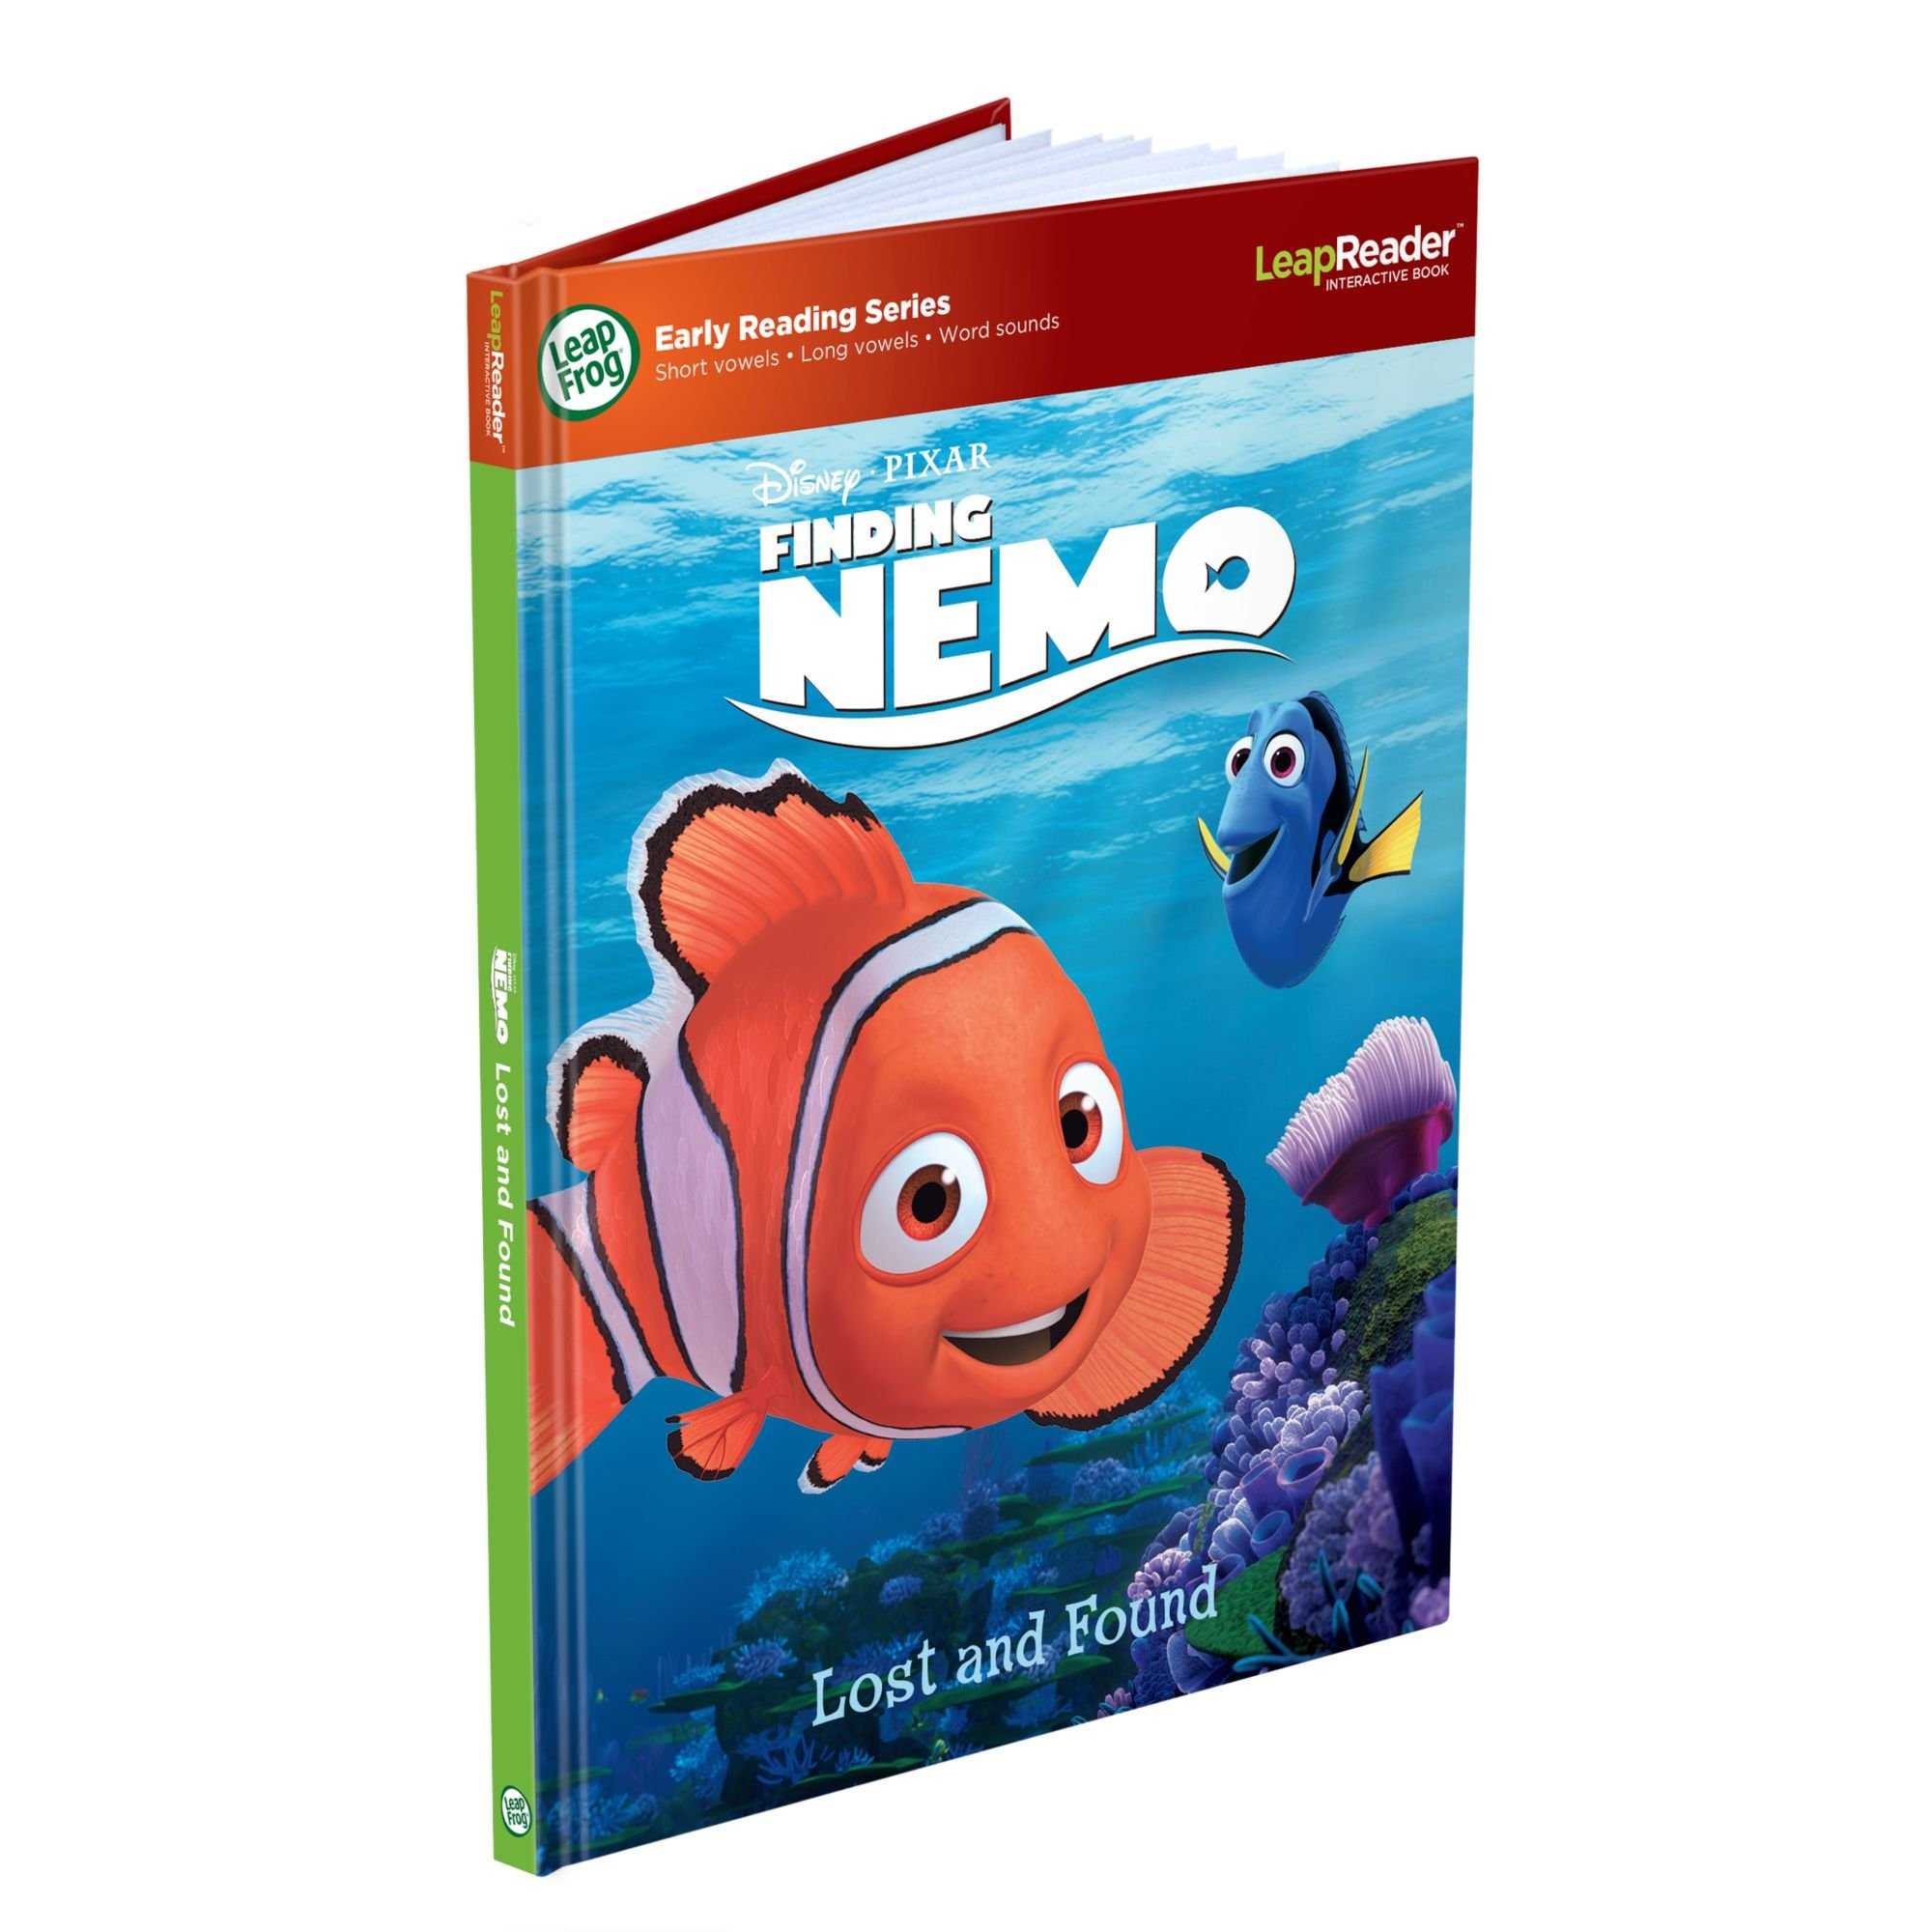 LeapFrog LeapReader Book: Disney·Pixar Finding Nemo, Lost and Found (works with Tag) by LeapFrog